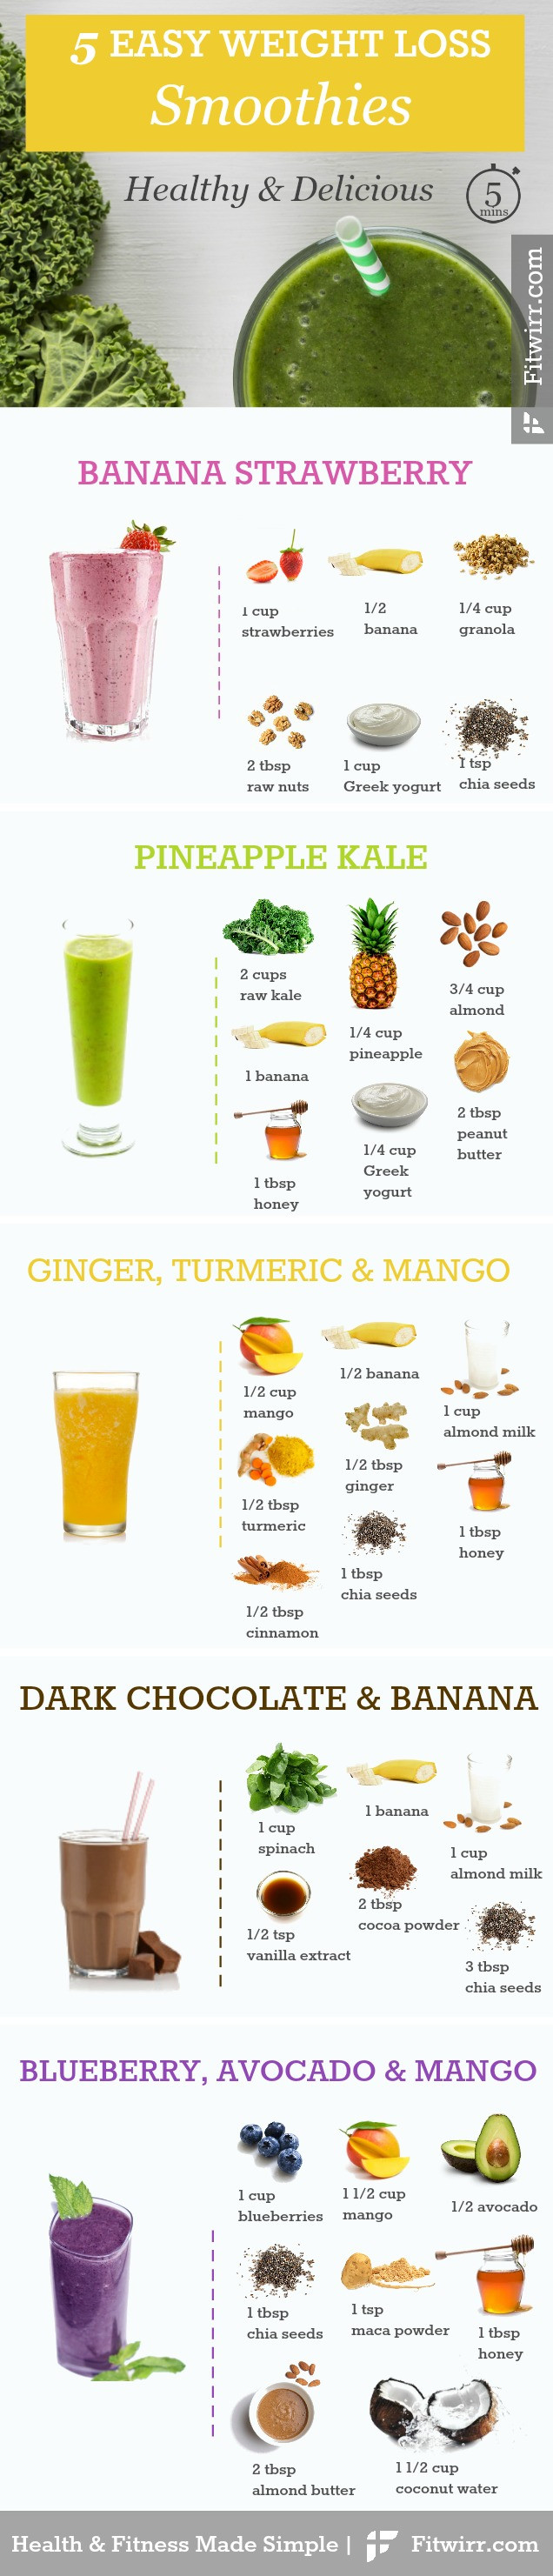 Simple Weight Loss Smoothies  5 Best Smoothie Recipes for Weight Loss